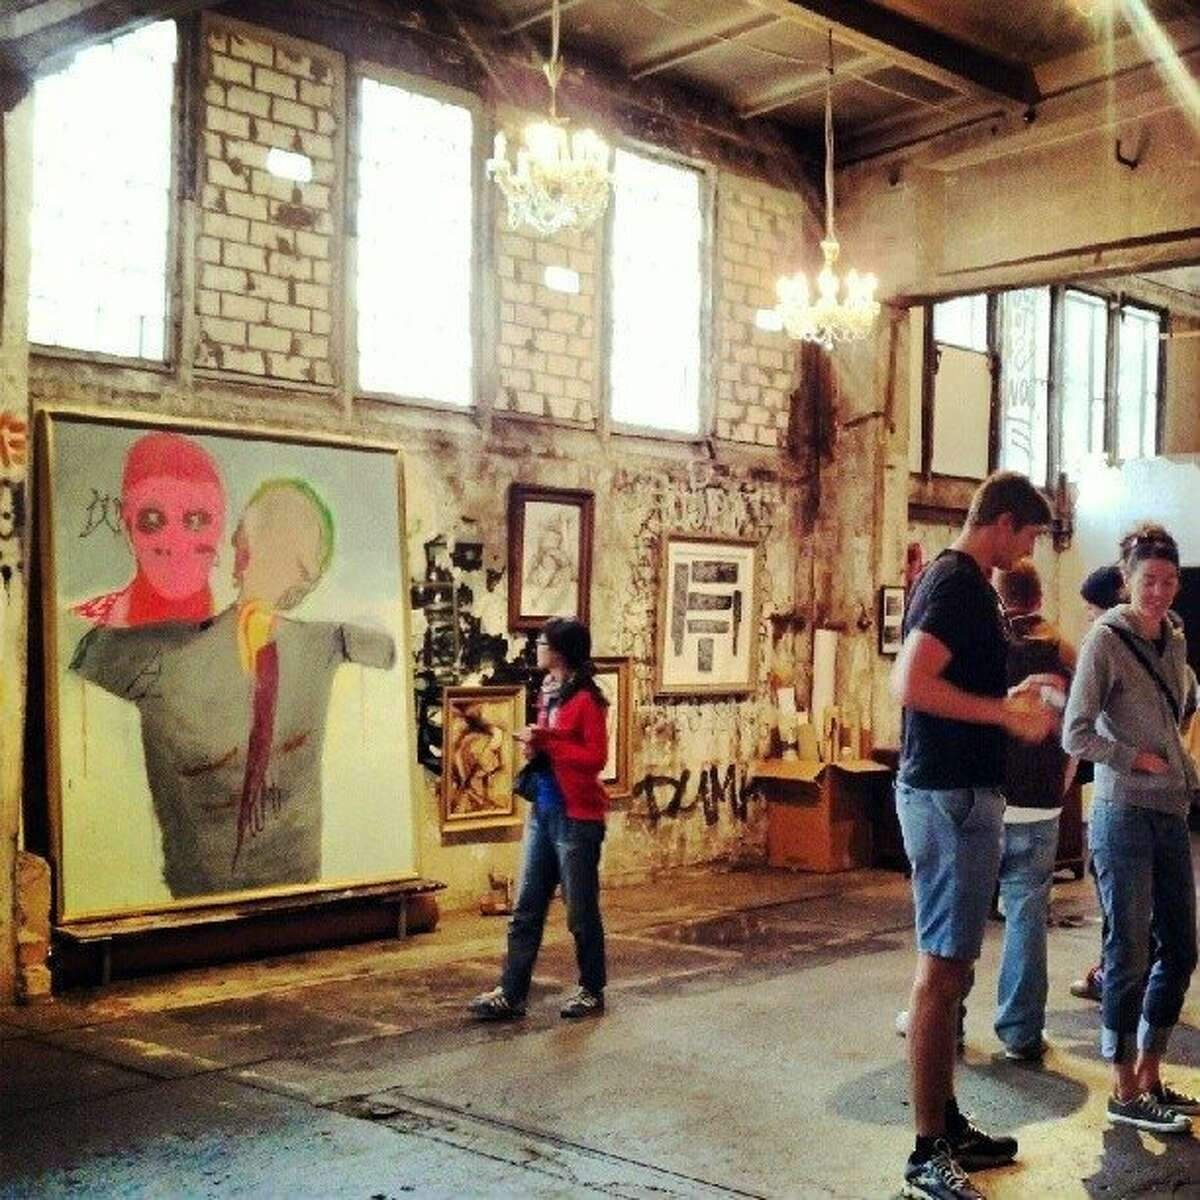 Skalitzers Gallery has found unofficial homes in which to squat among Berlin's abandoned buildings.